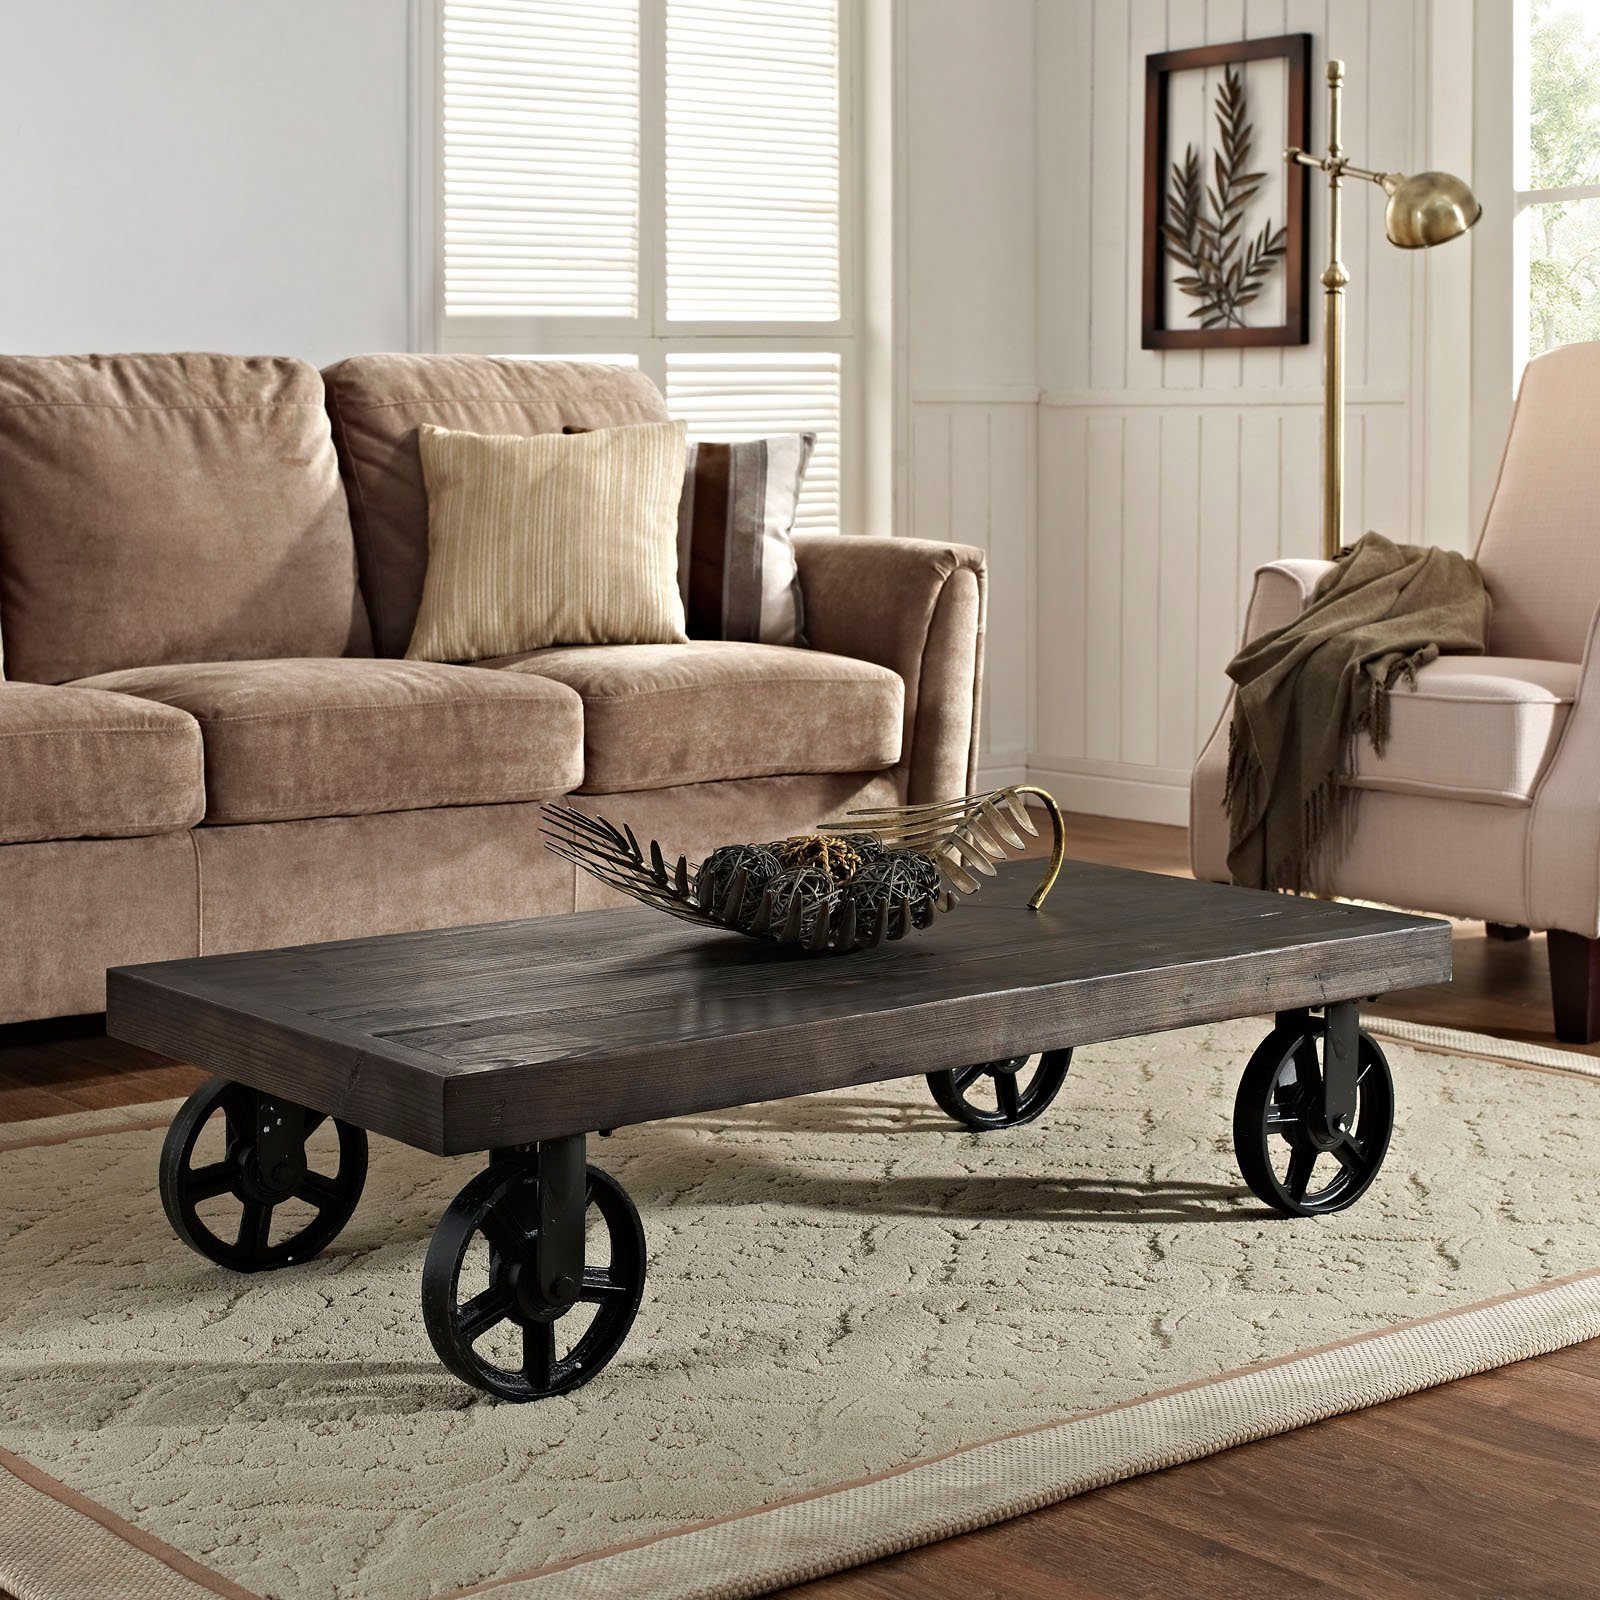 Exceptionnel Modway Garrison Coffee Table   Walmart.com